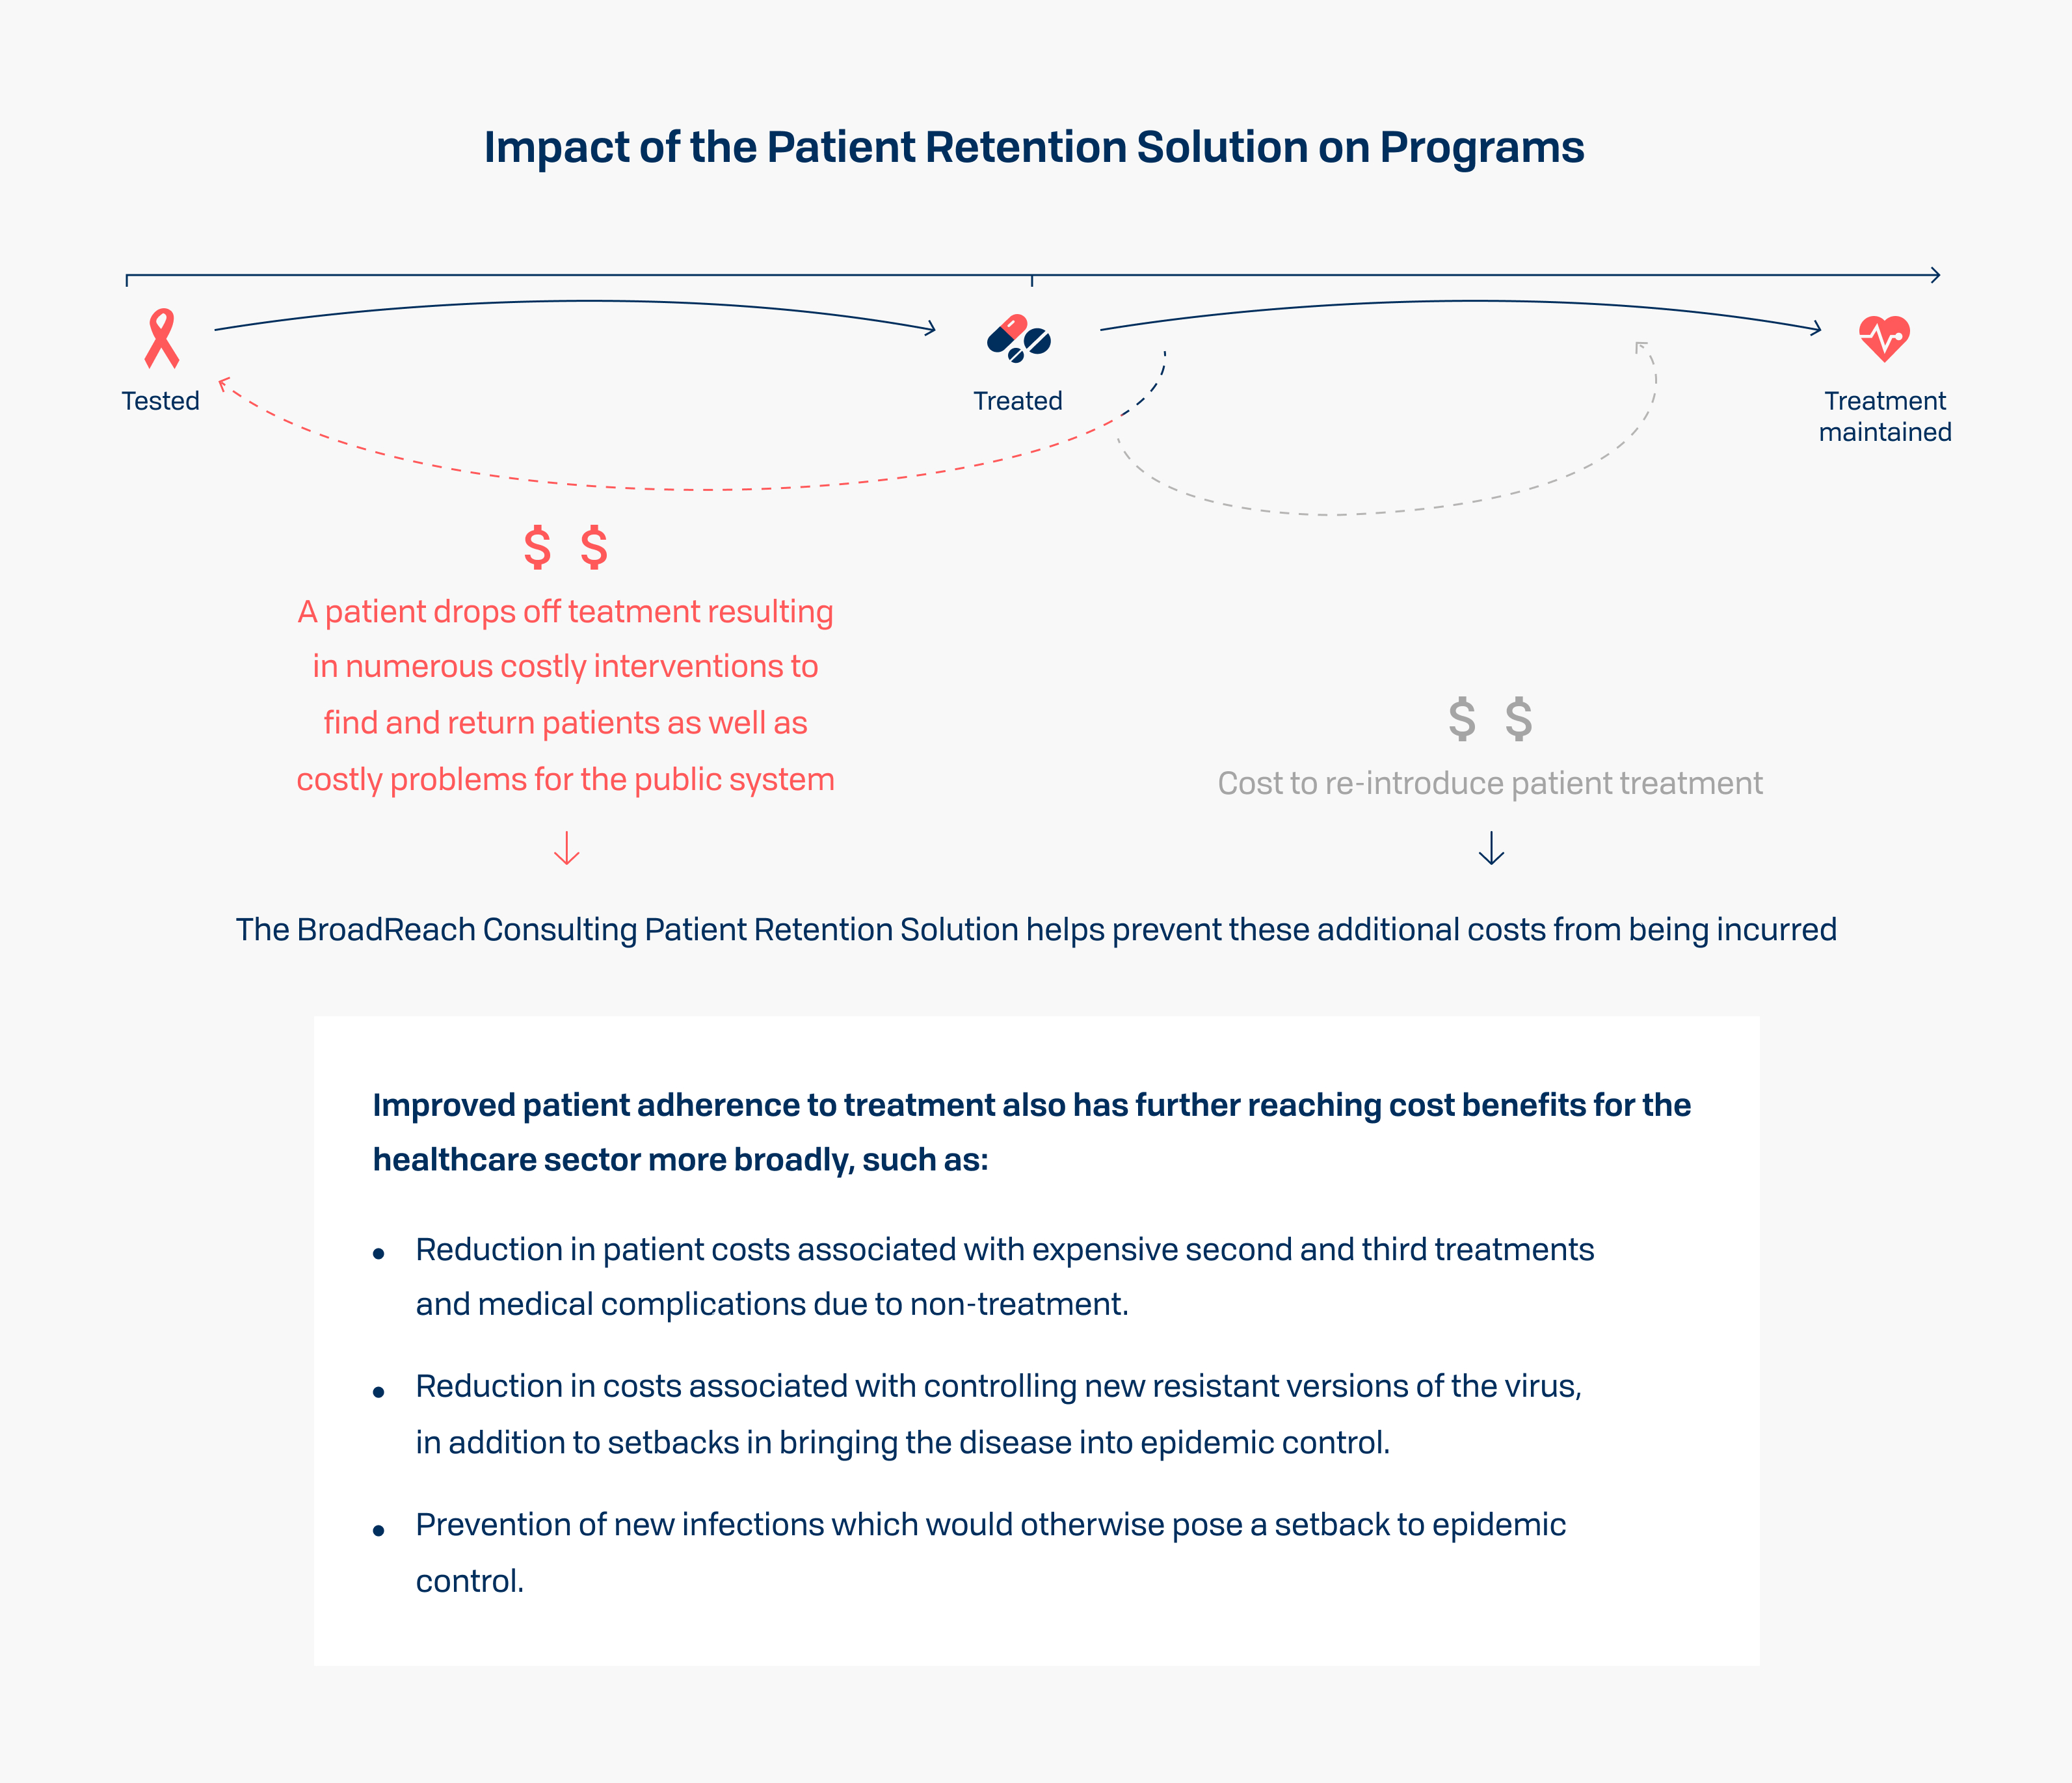 Impact of the Patient Retention Solution on Programs - Costs